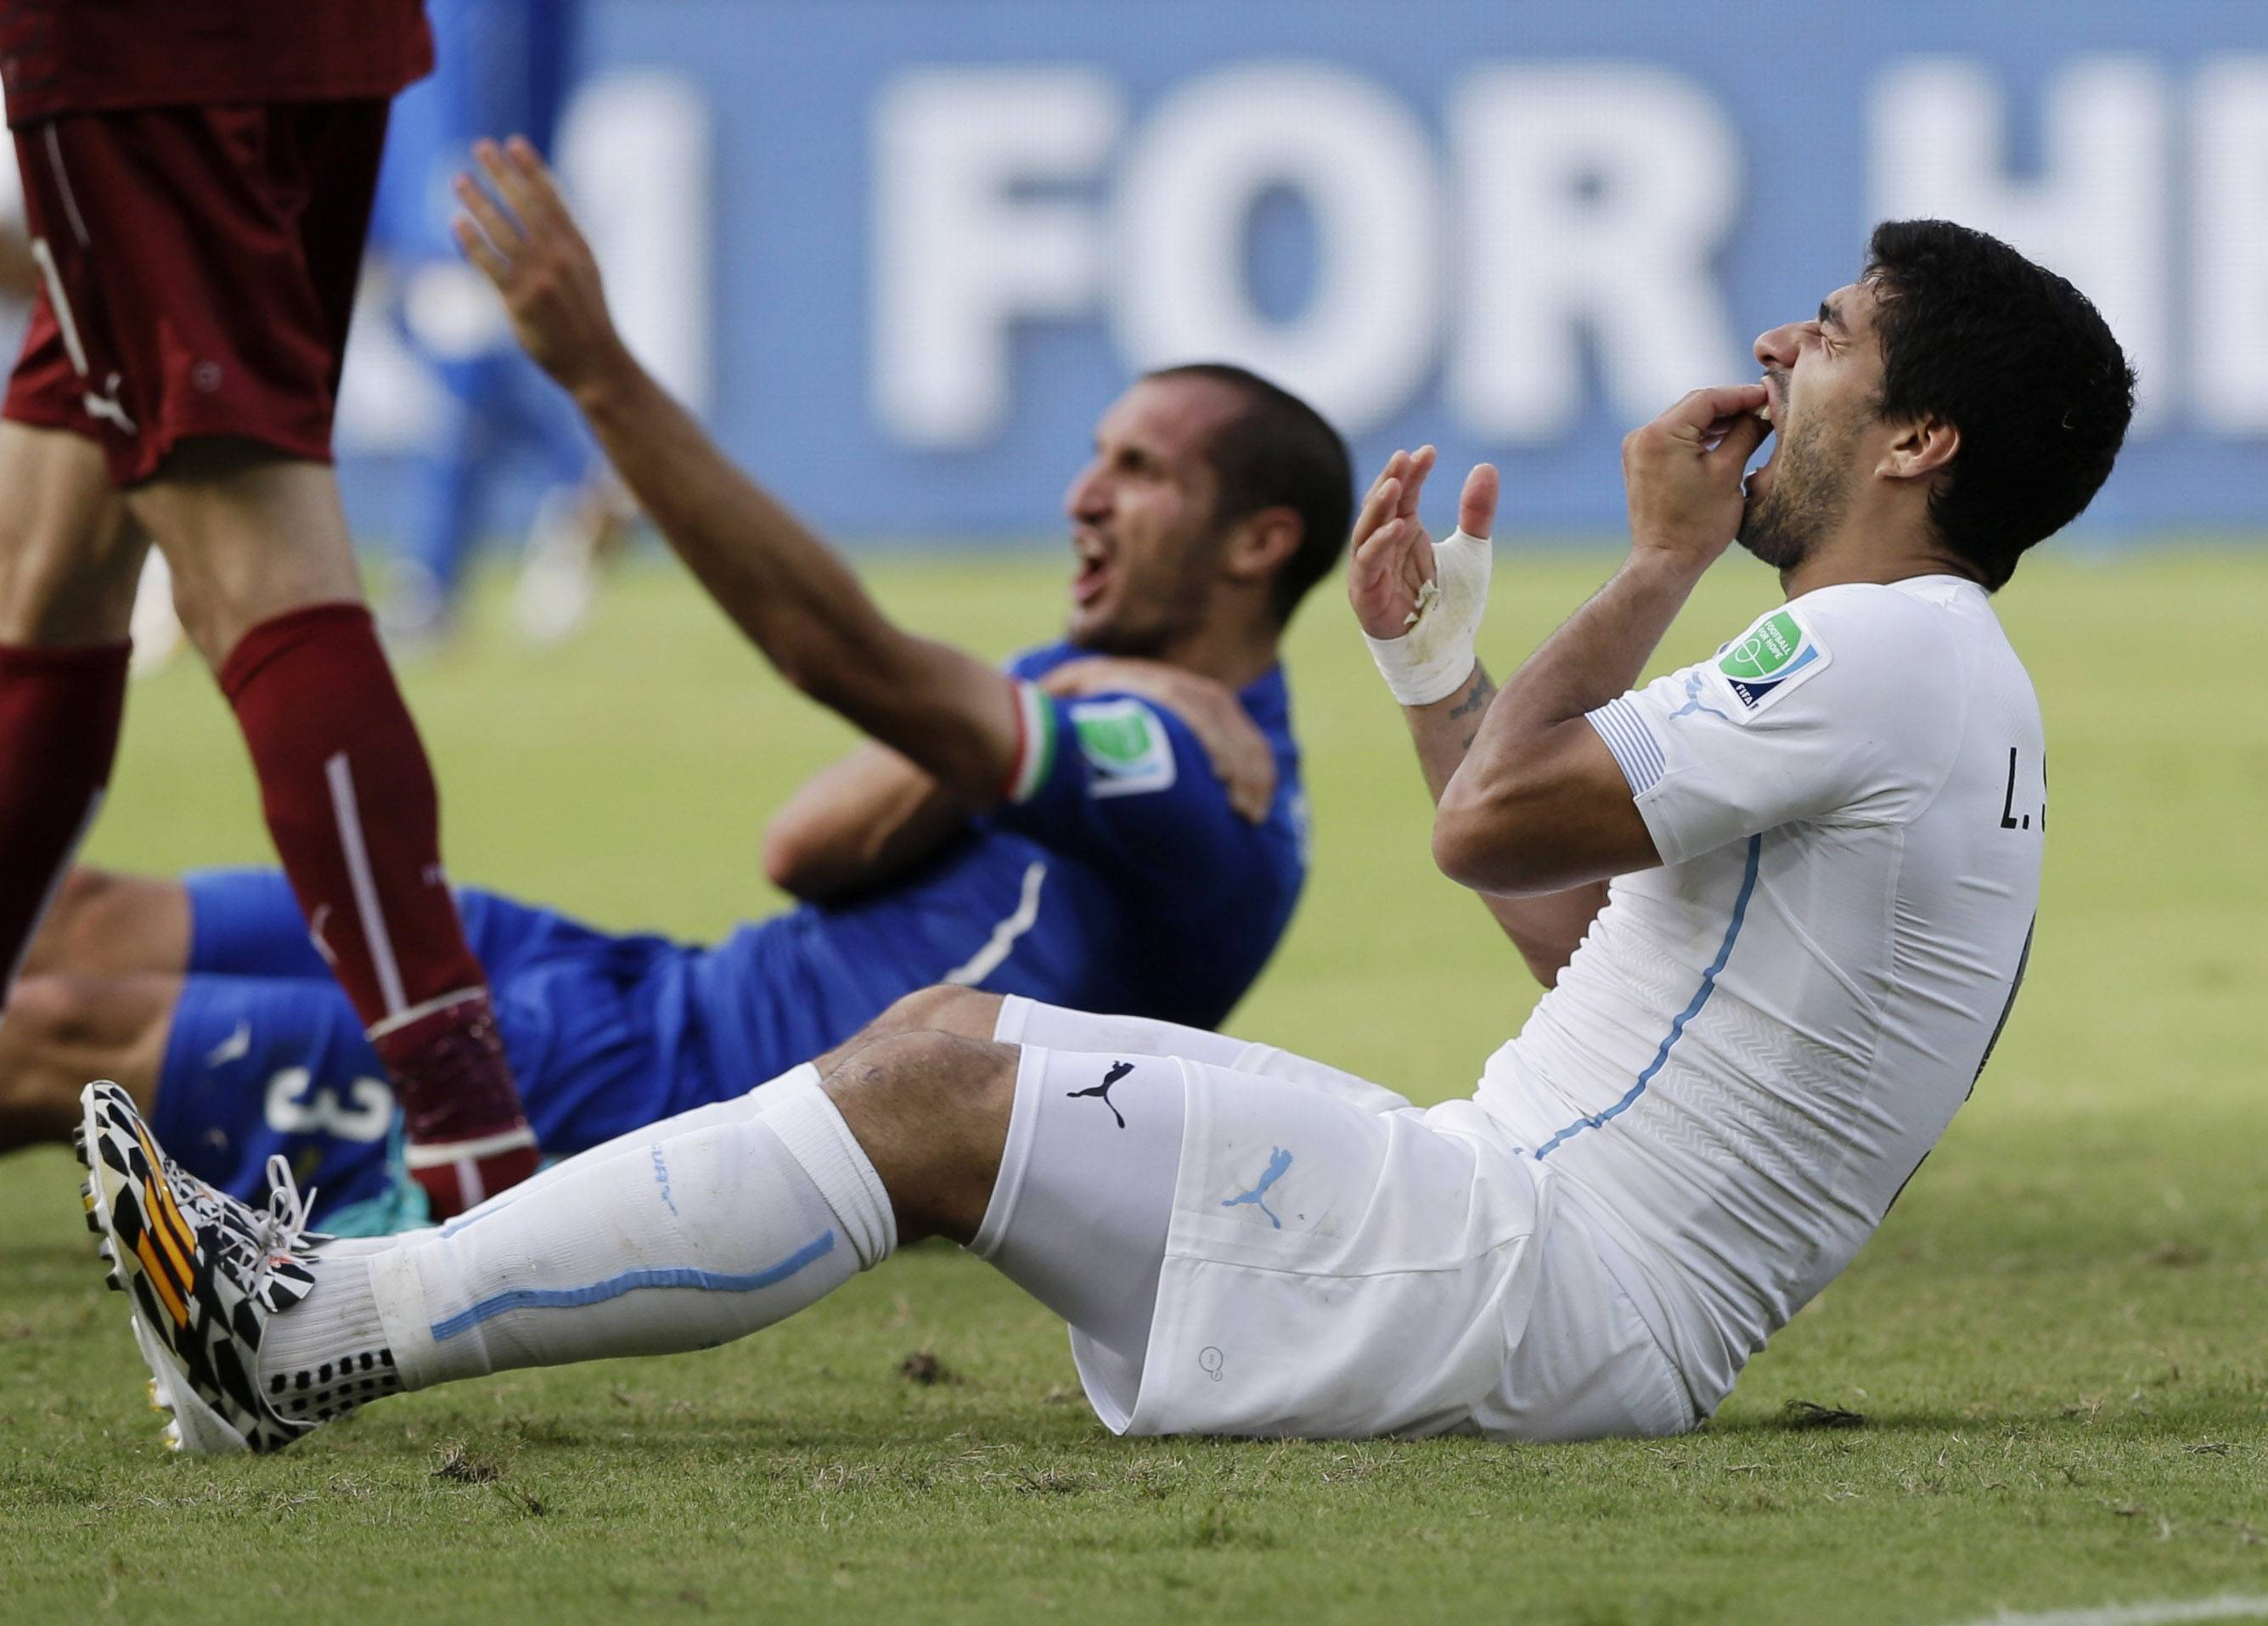 Uruguay's Luis Suarez holds his teeth after running into Italy's Giorgio Chiellini's shoulder Tuesday during a Group D World Cup soccer match at the Arena das Dunas in Natal, Brazil.